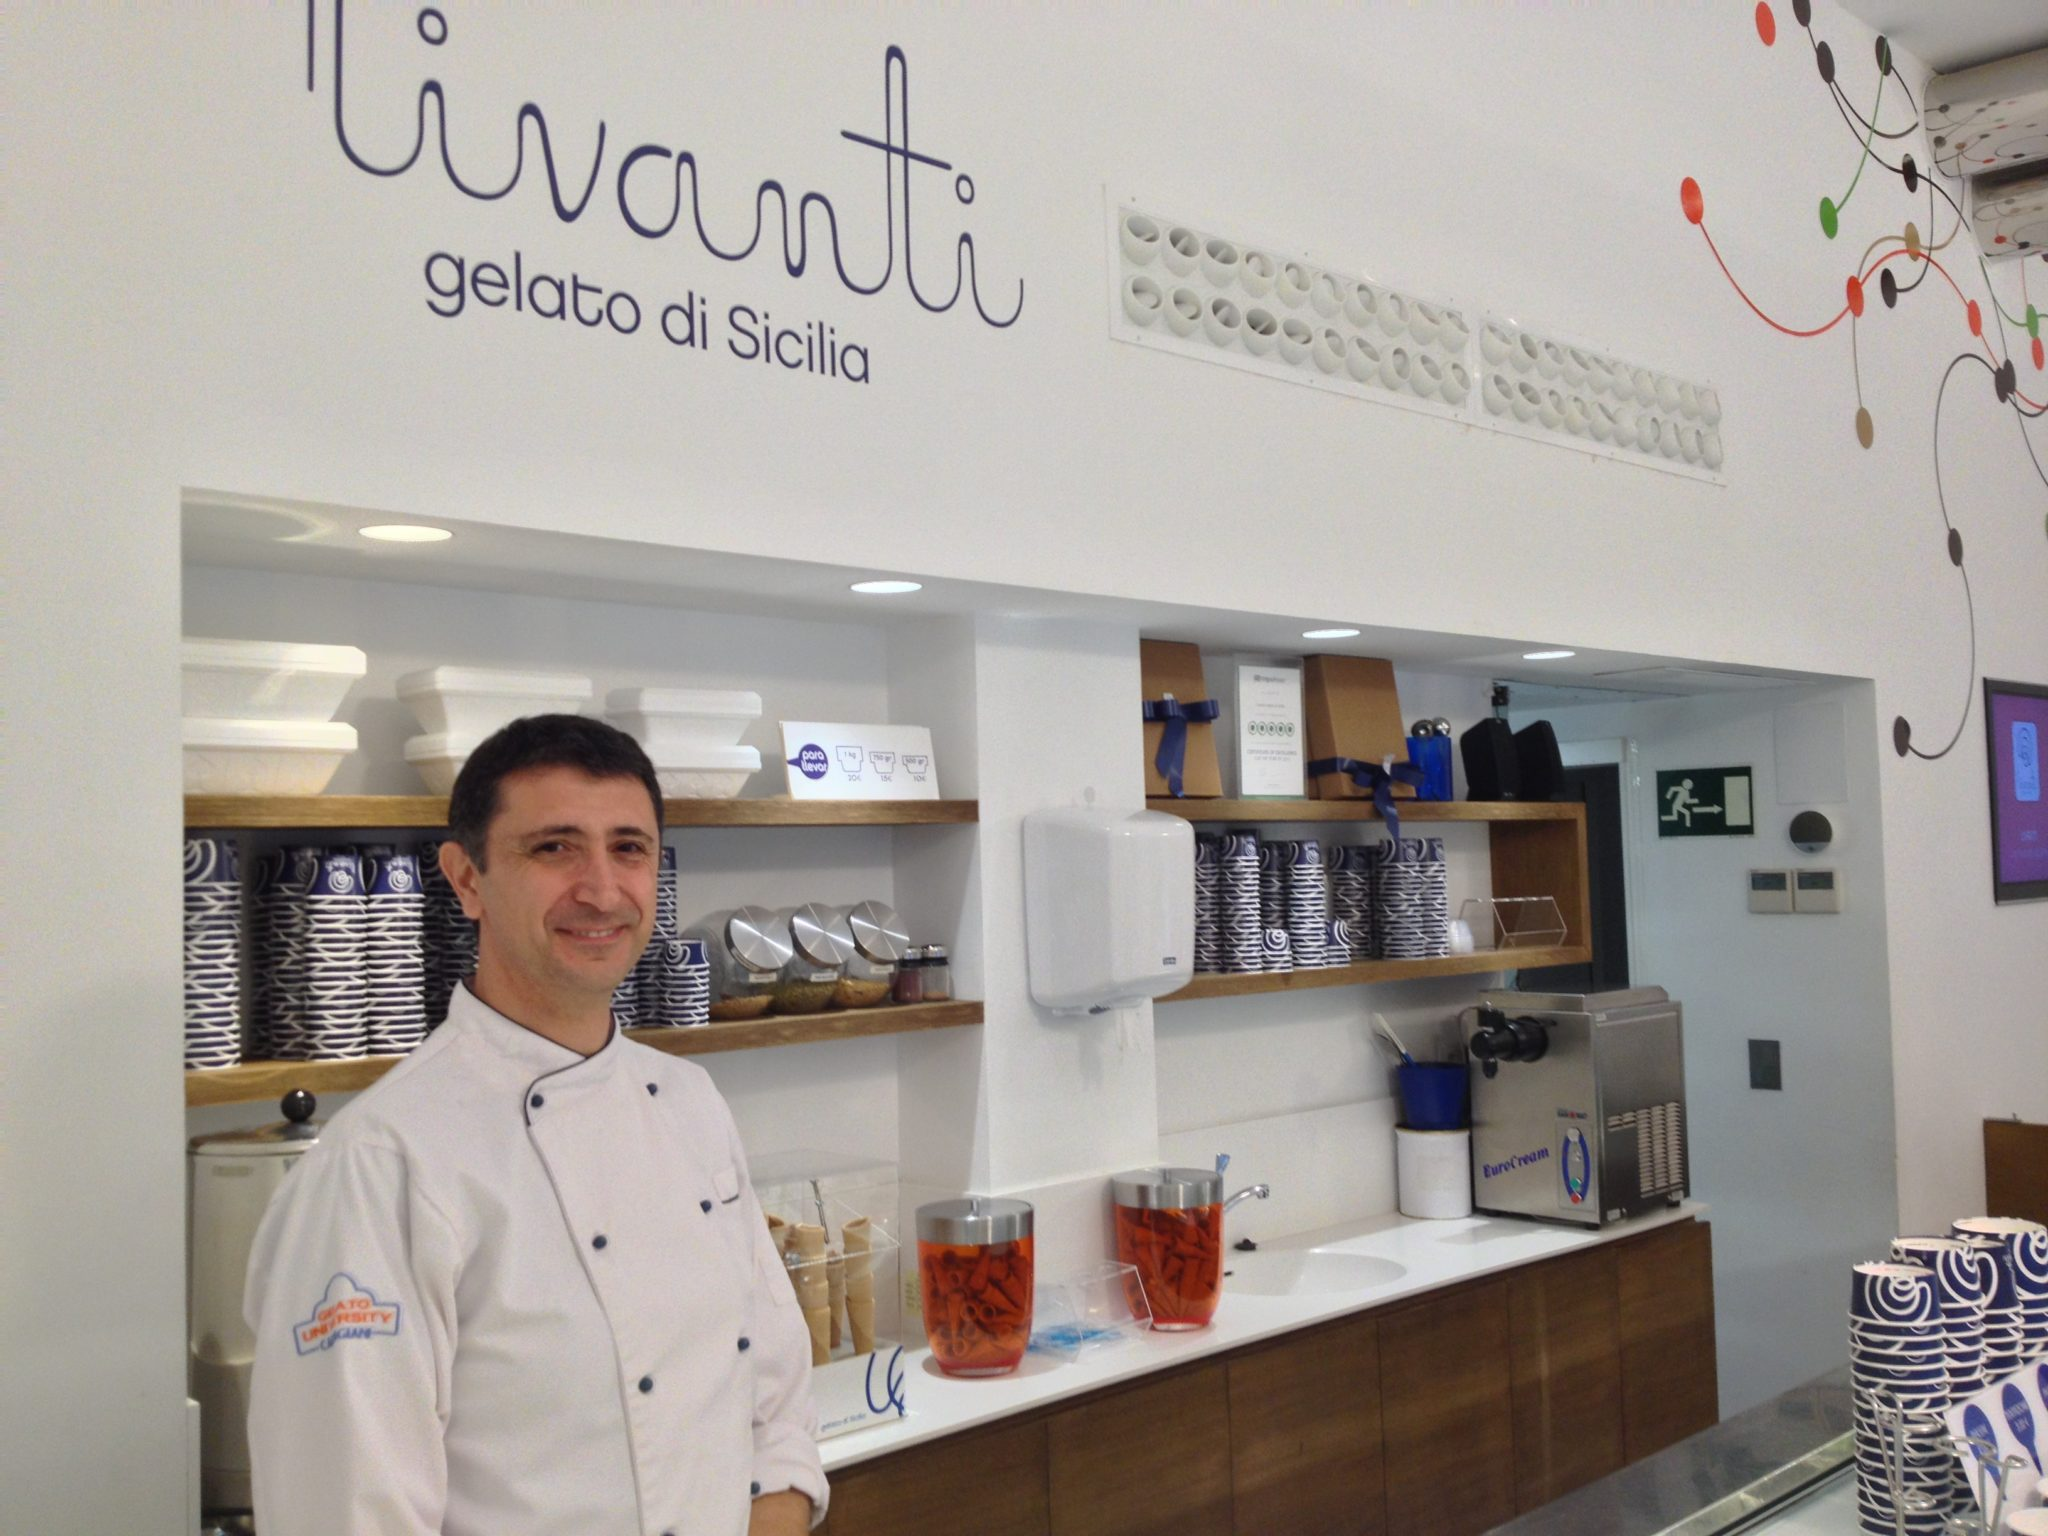 Enjoy Celebrity Radio's Livanti Gelato di Sicilia Ice Cream Alicante….. Livanti Gelato di Sicilia in Alicante is simply the best ice cream I've ever tasted! […]